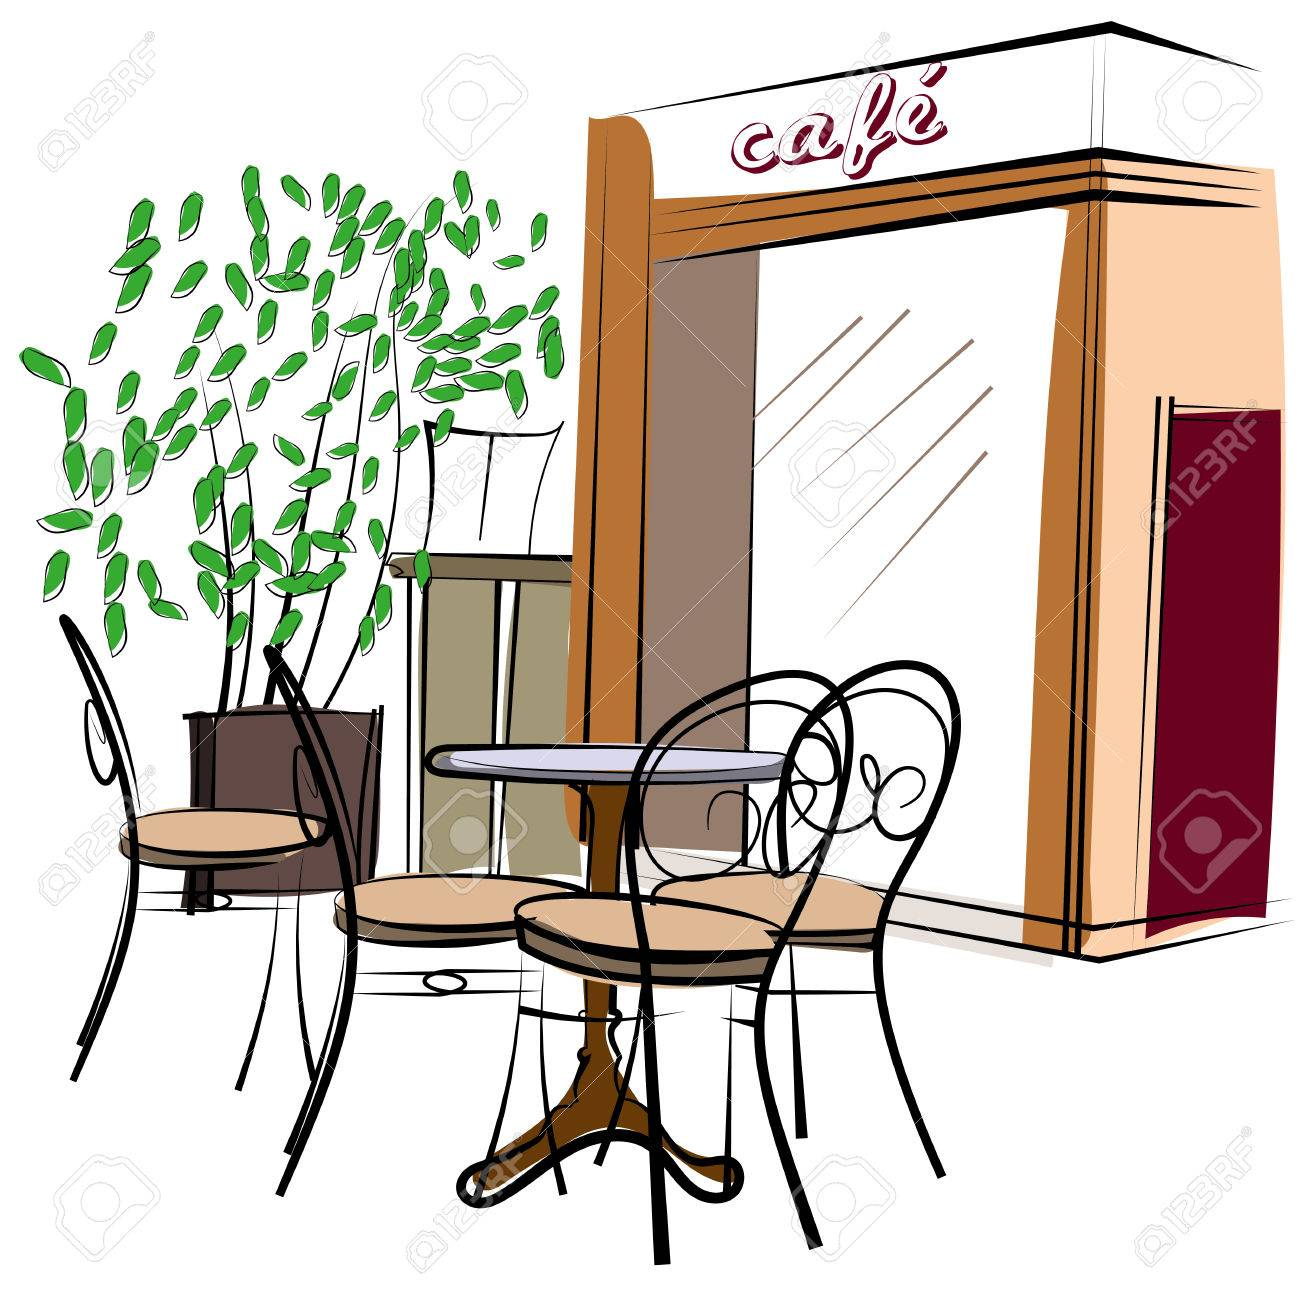 Cute hand drawn style illustration of a cafe.